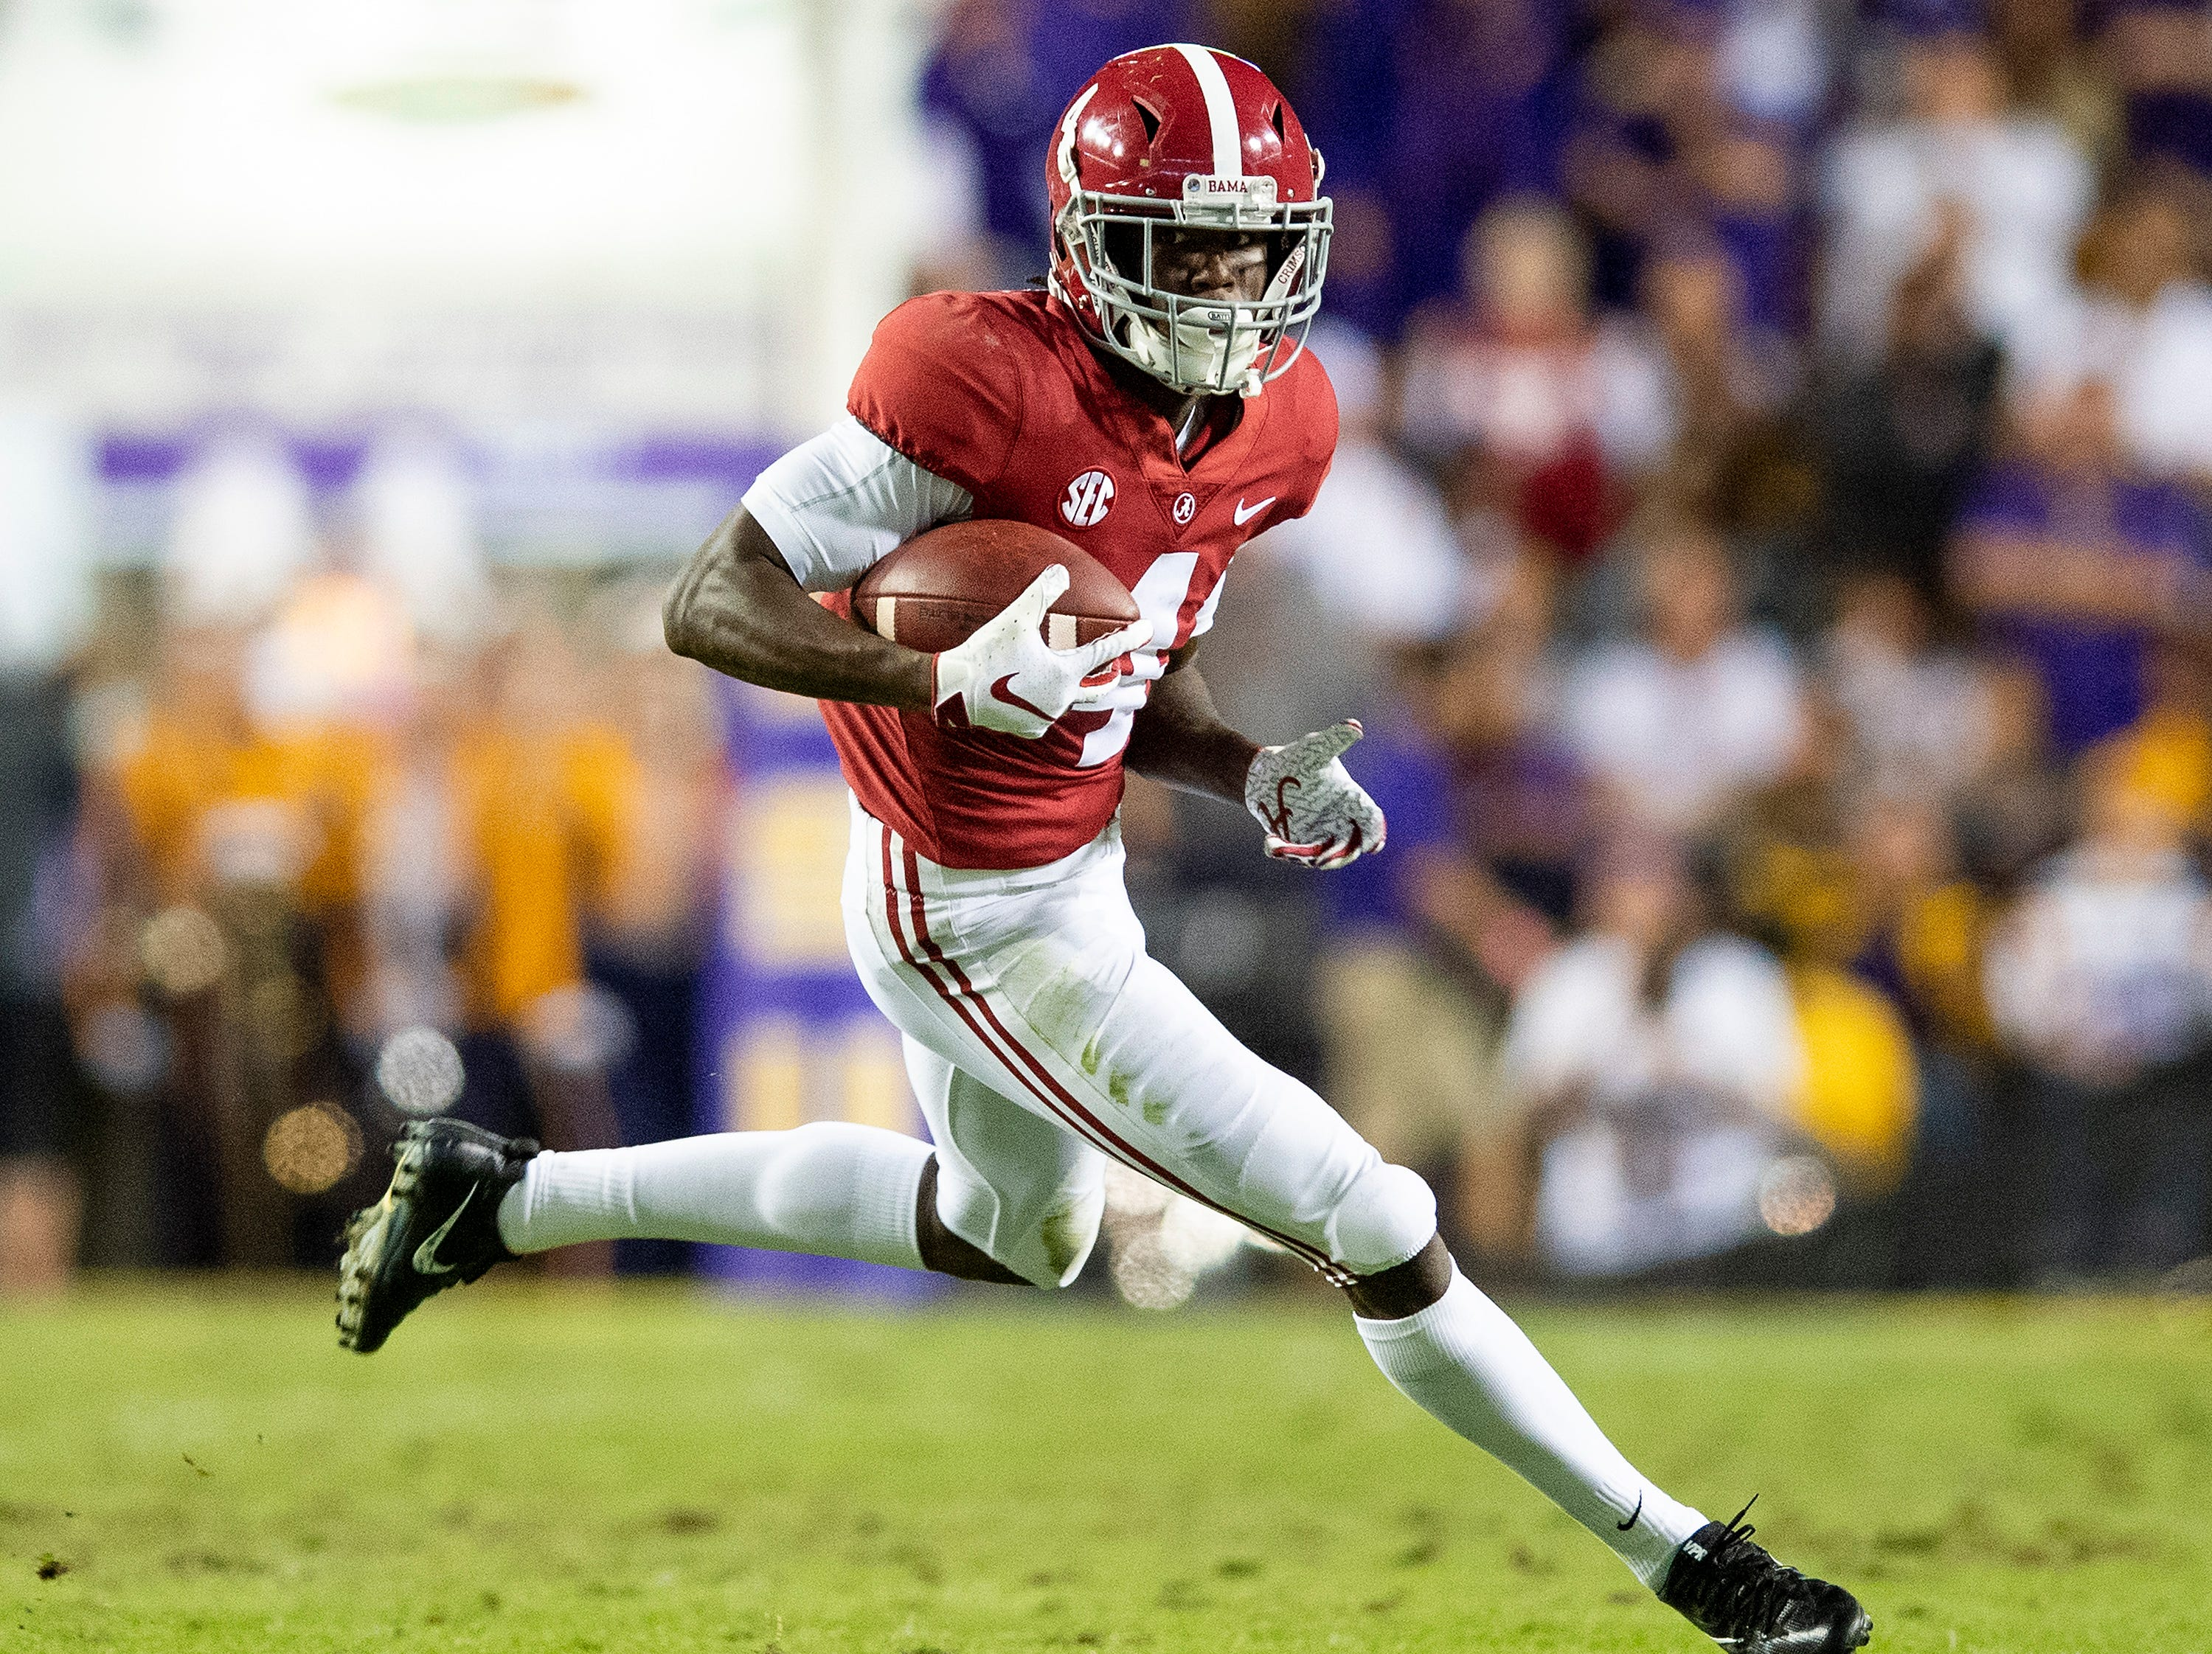 Alabama wide receiver Jerry Jeudy (4) against LSU in first half action at Tiger Stadium in Baton Rouge, La., on Saturday November 3, 2018.